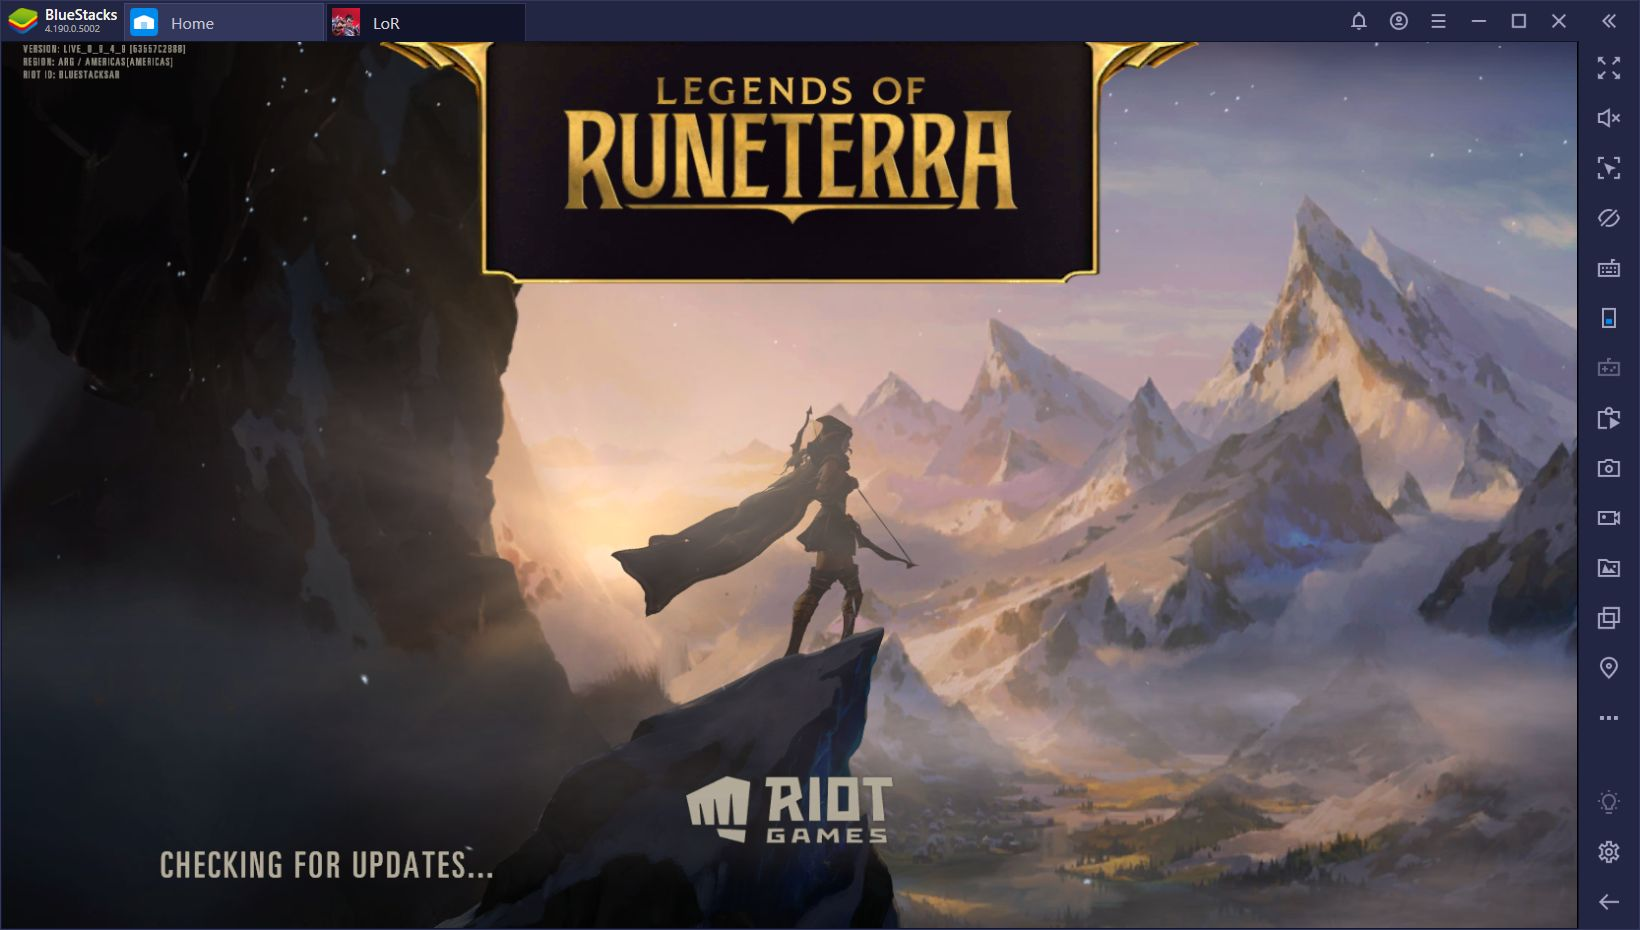 Riot Games' Legends of Runeterra: How to Get Started?